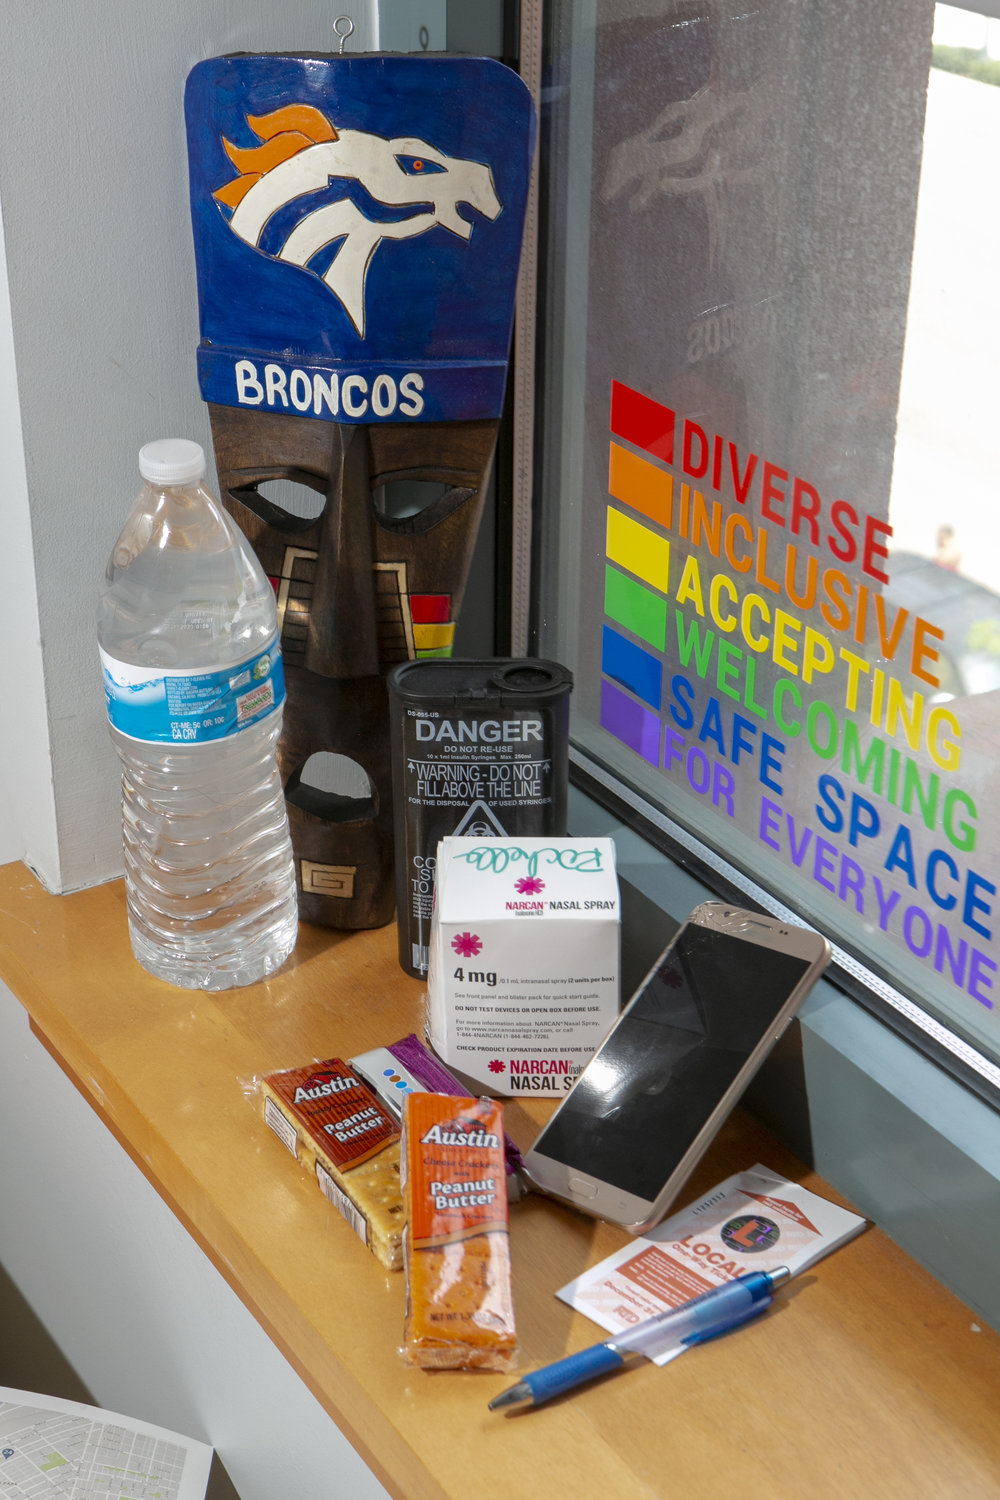 The Denver Public Library  Community Resource Specialists carry a blend of supplies to help unhoused customers. The supplies include everyday necessities like socks, snacks, and water. The team also carries the life-saving tool Narcan, a nasal spray used to treat emergency opioid overdose. Elissa Hardy, community resource manager, introduced the Narcan treatment program to the library in 2015. Currently, 400 DPL library staff are trained to administer Narcan in emergencies and in the past year have saved 17 lives.